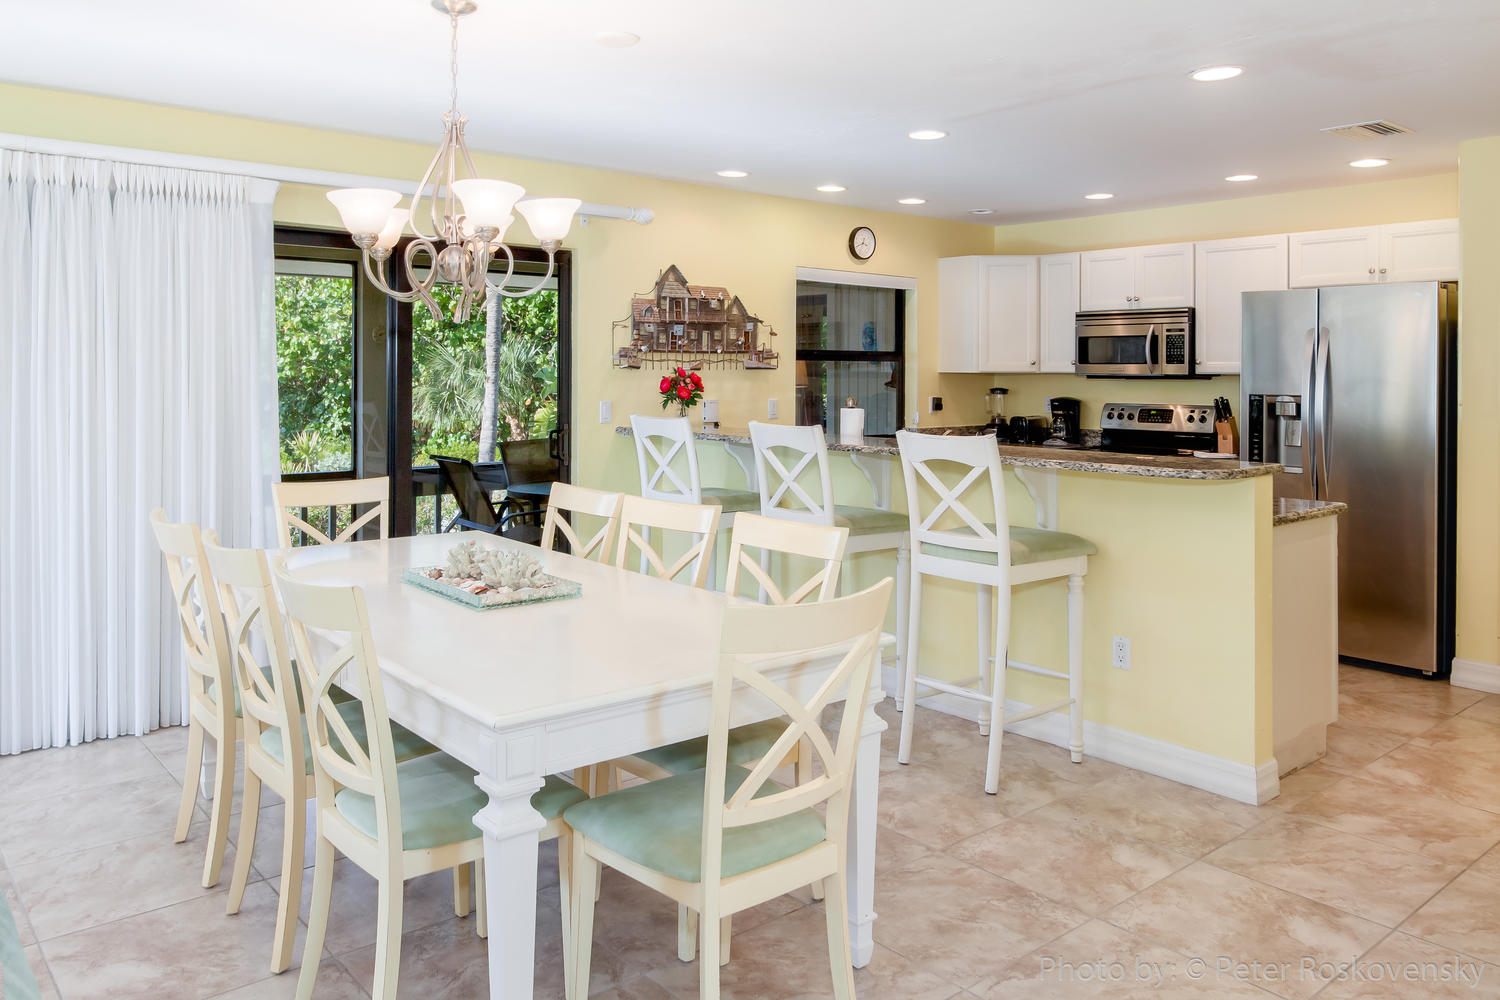 View of Kitchen/Dining Room in Beach Home 2 on Captiva Island Florida